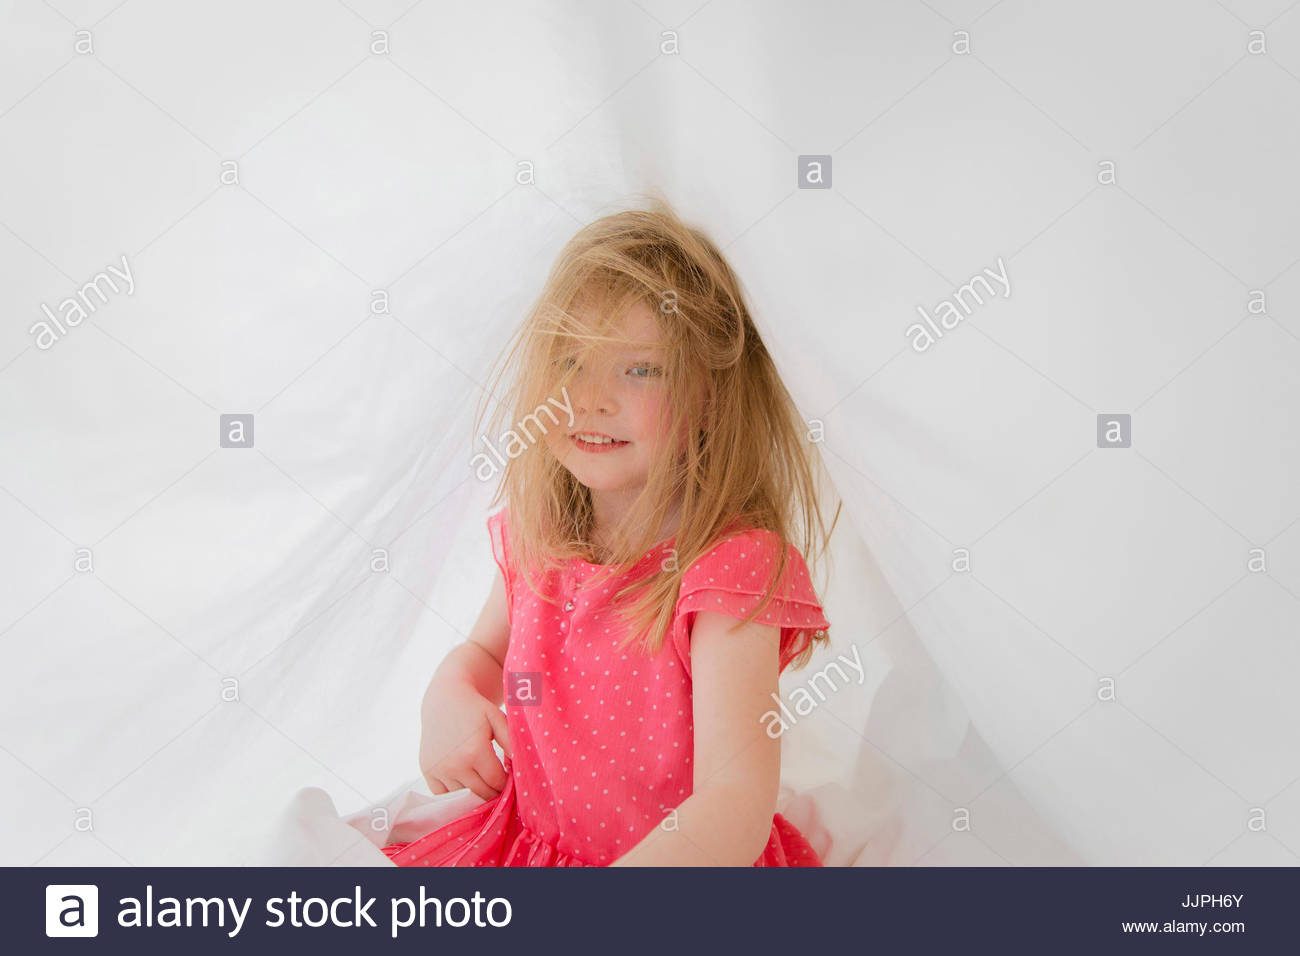 Smiling blond girl wearing red dress sitting on bed, tousled hair. - Stock Image